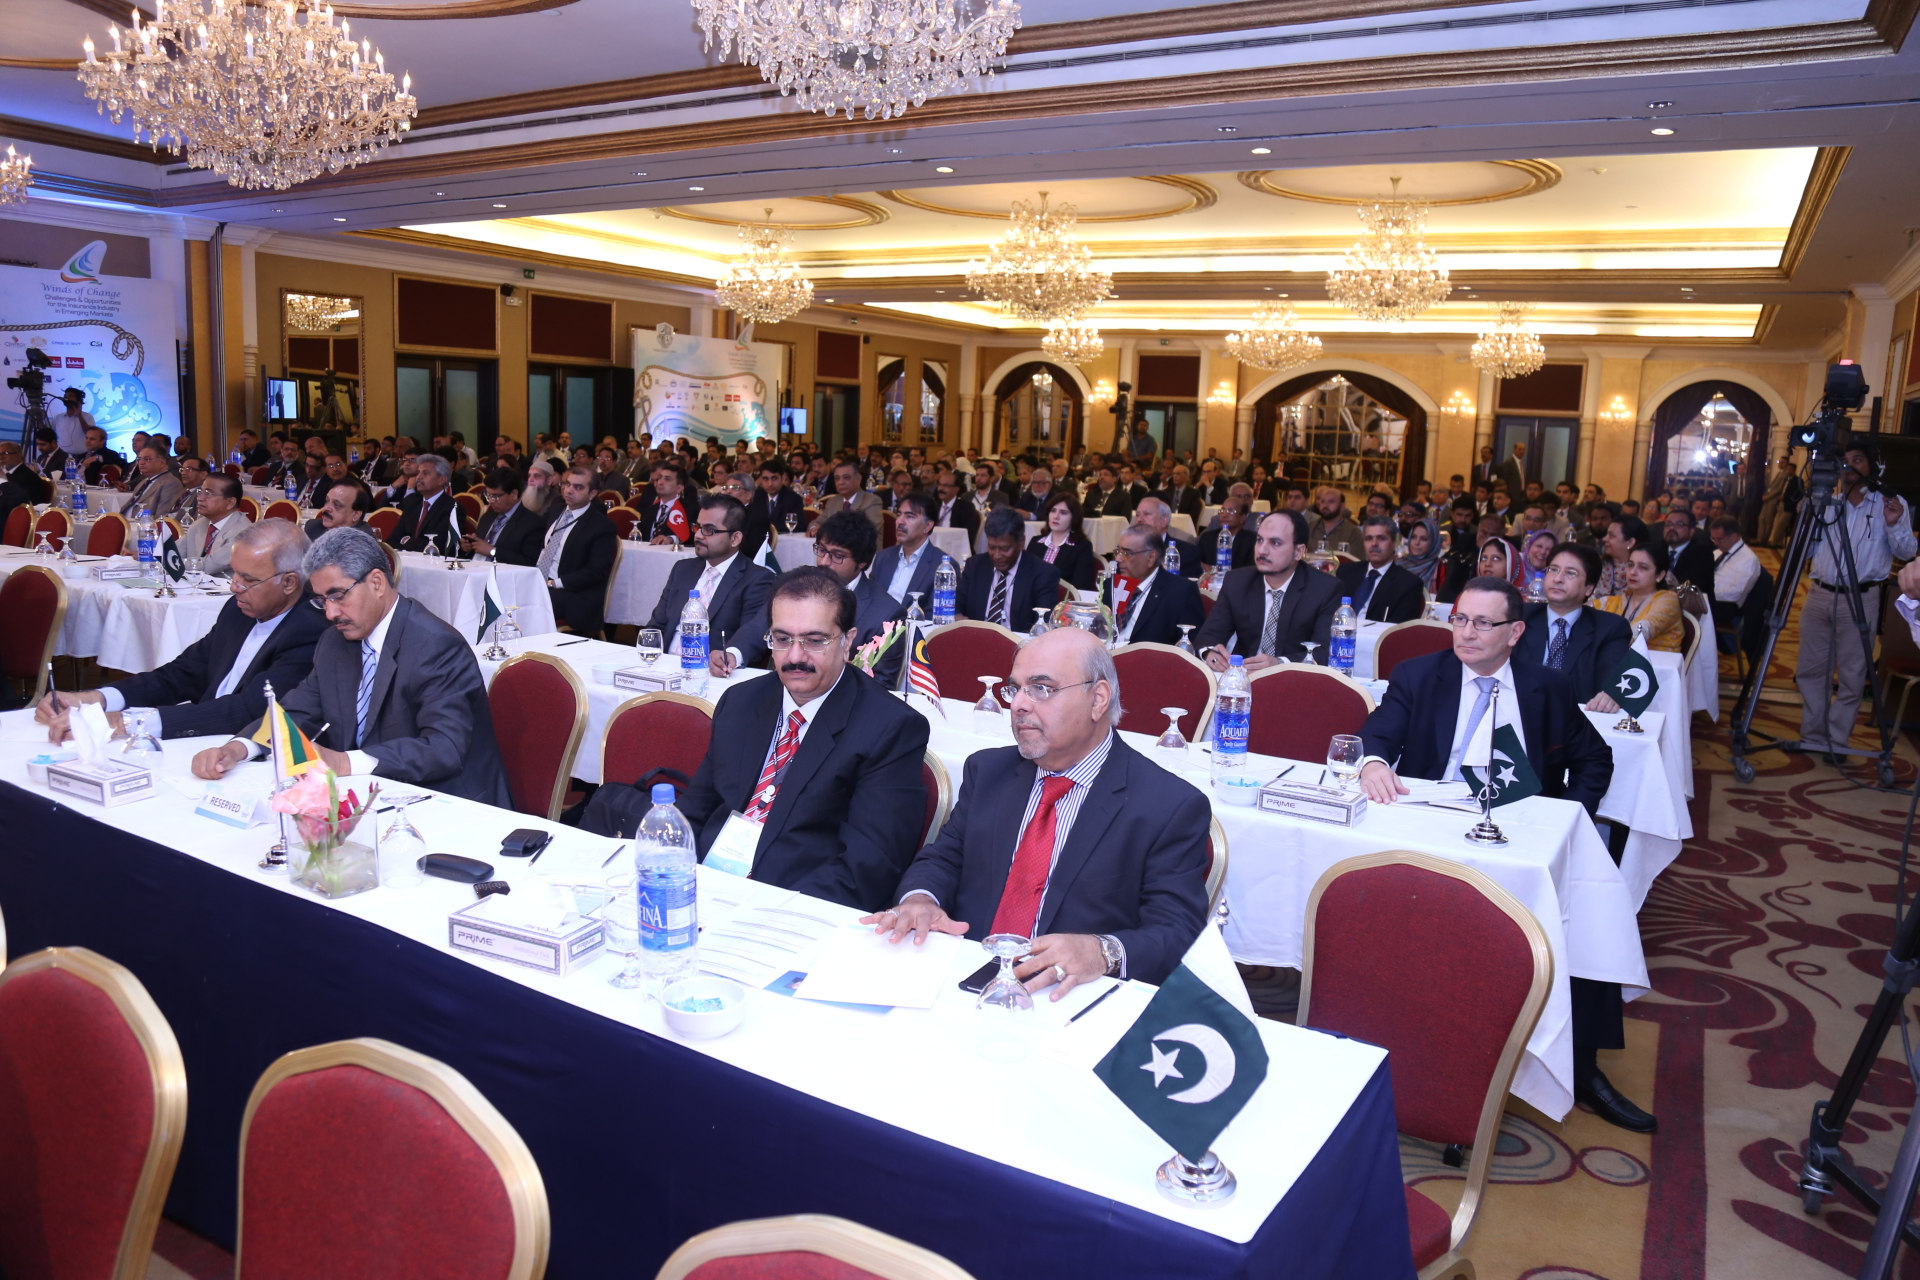 Attending the PIC Conference in Karachi, Pakistan